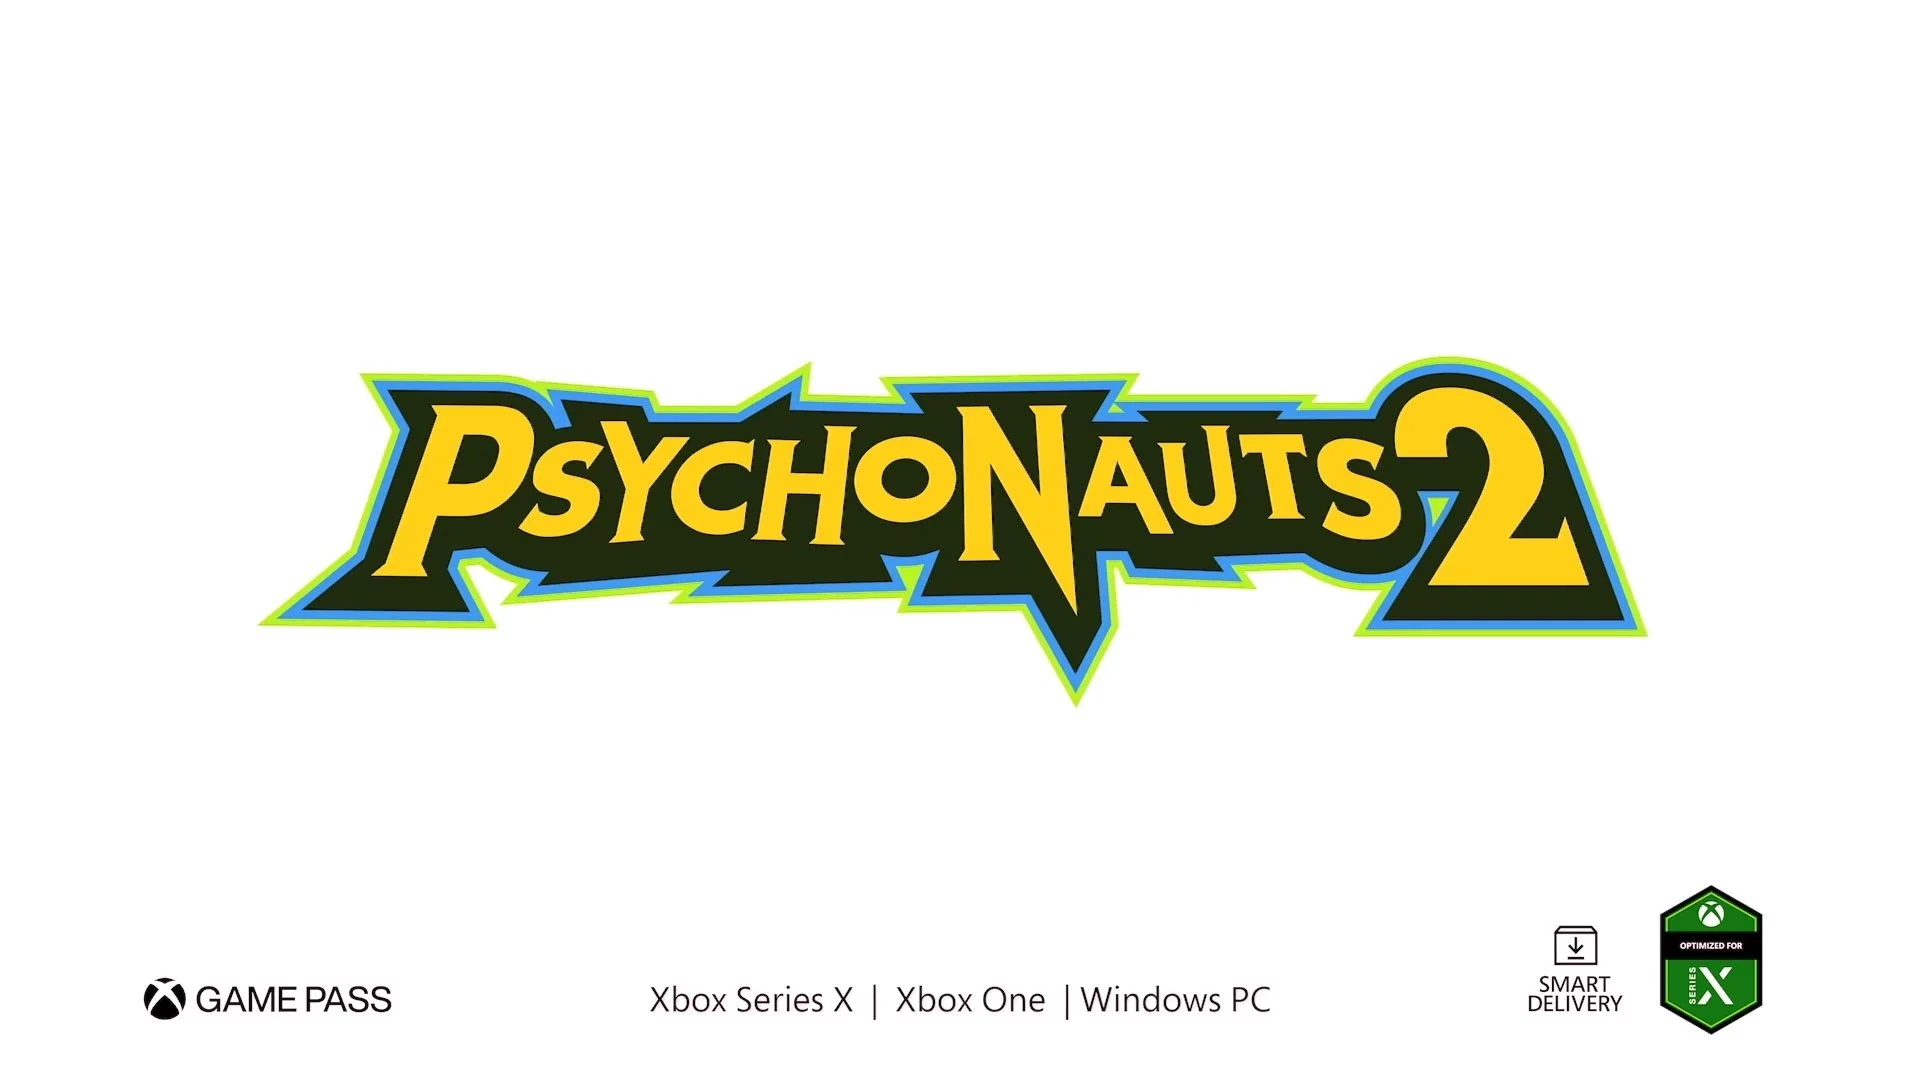 psychonauts-2-features-new-jack-black-song.jpg